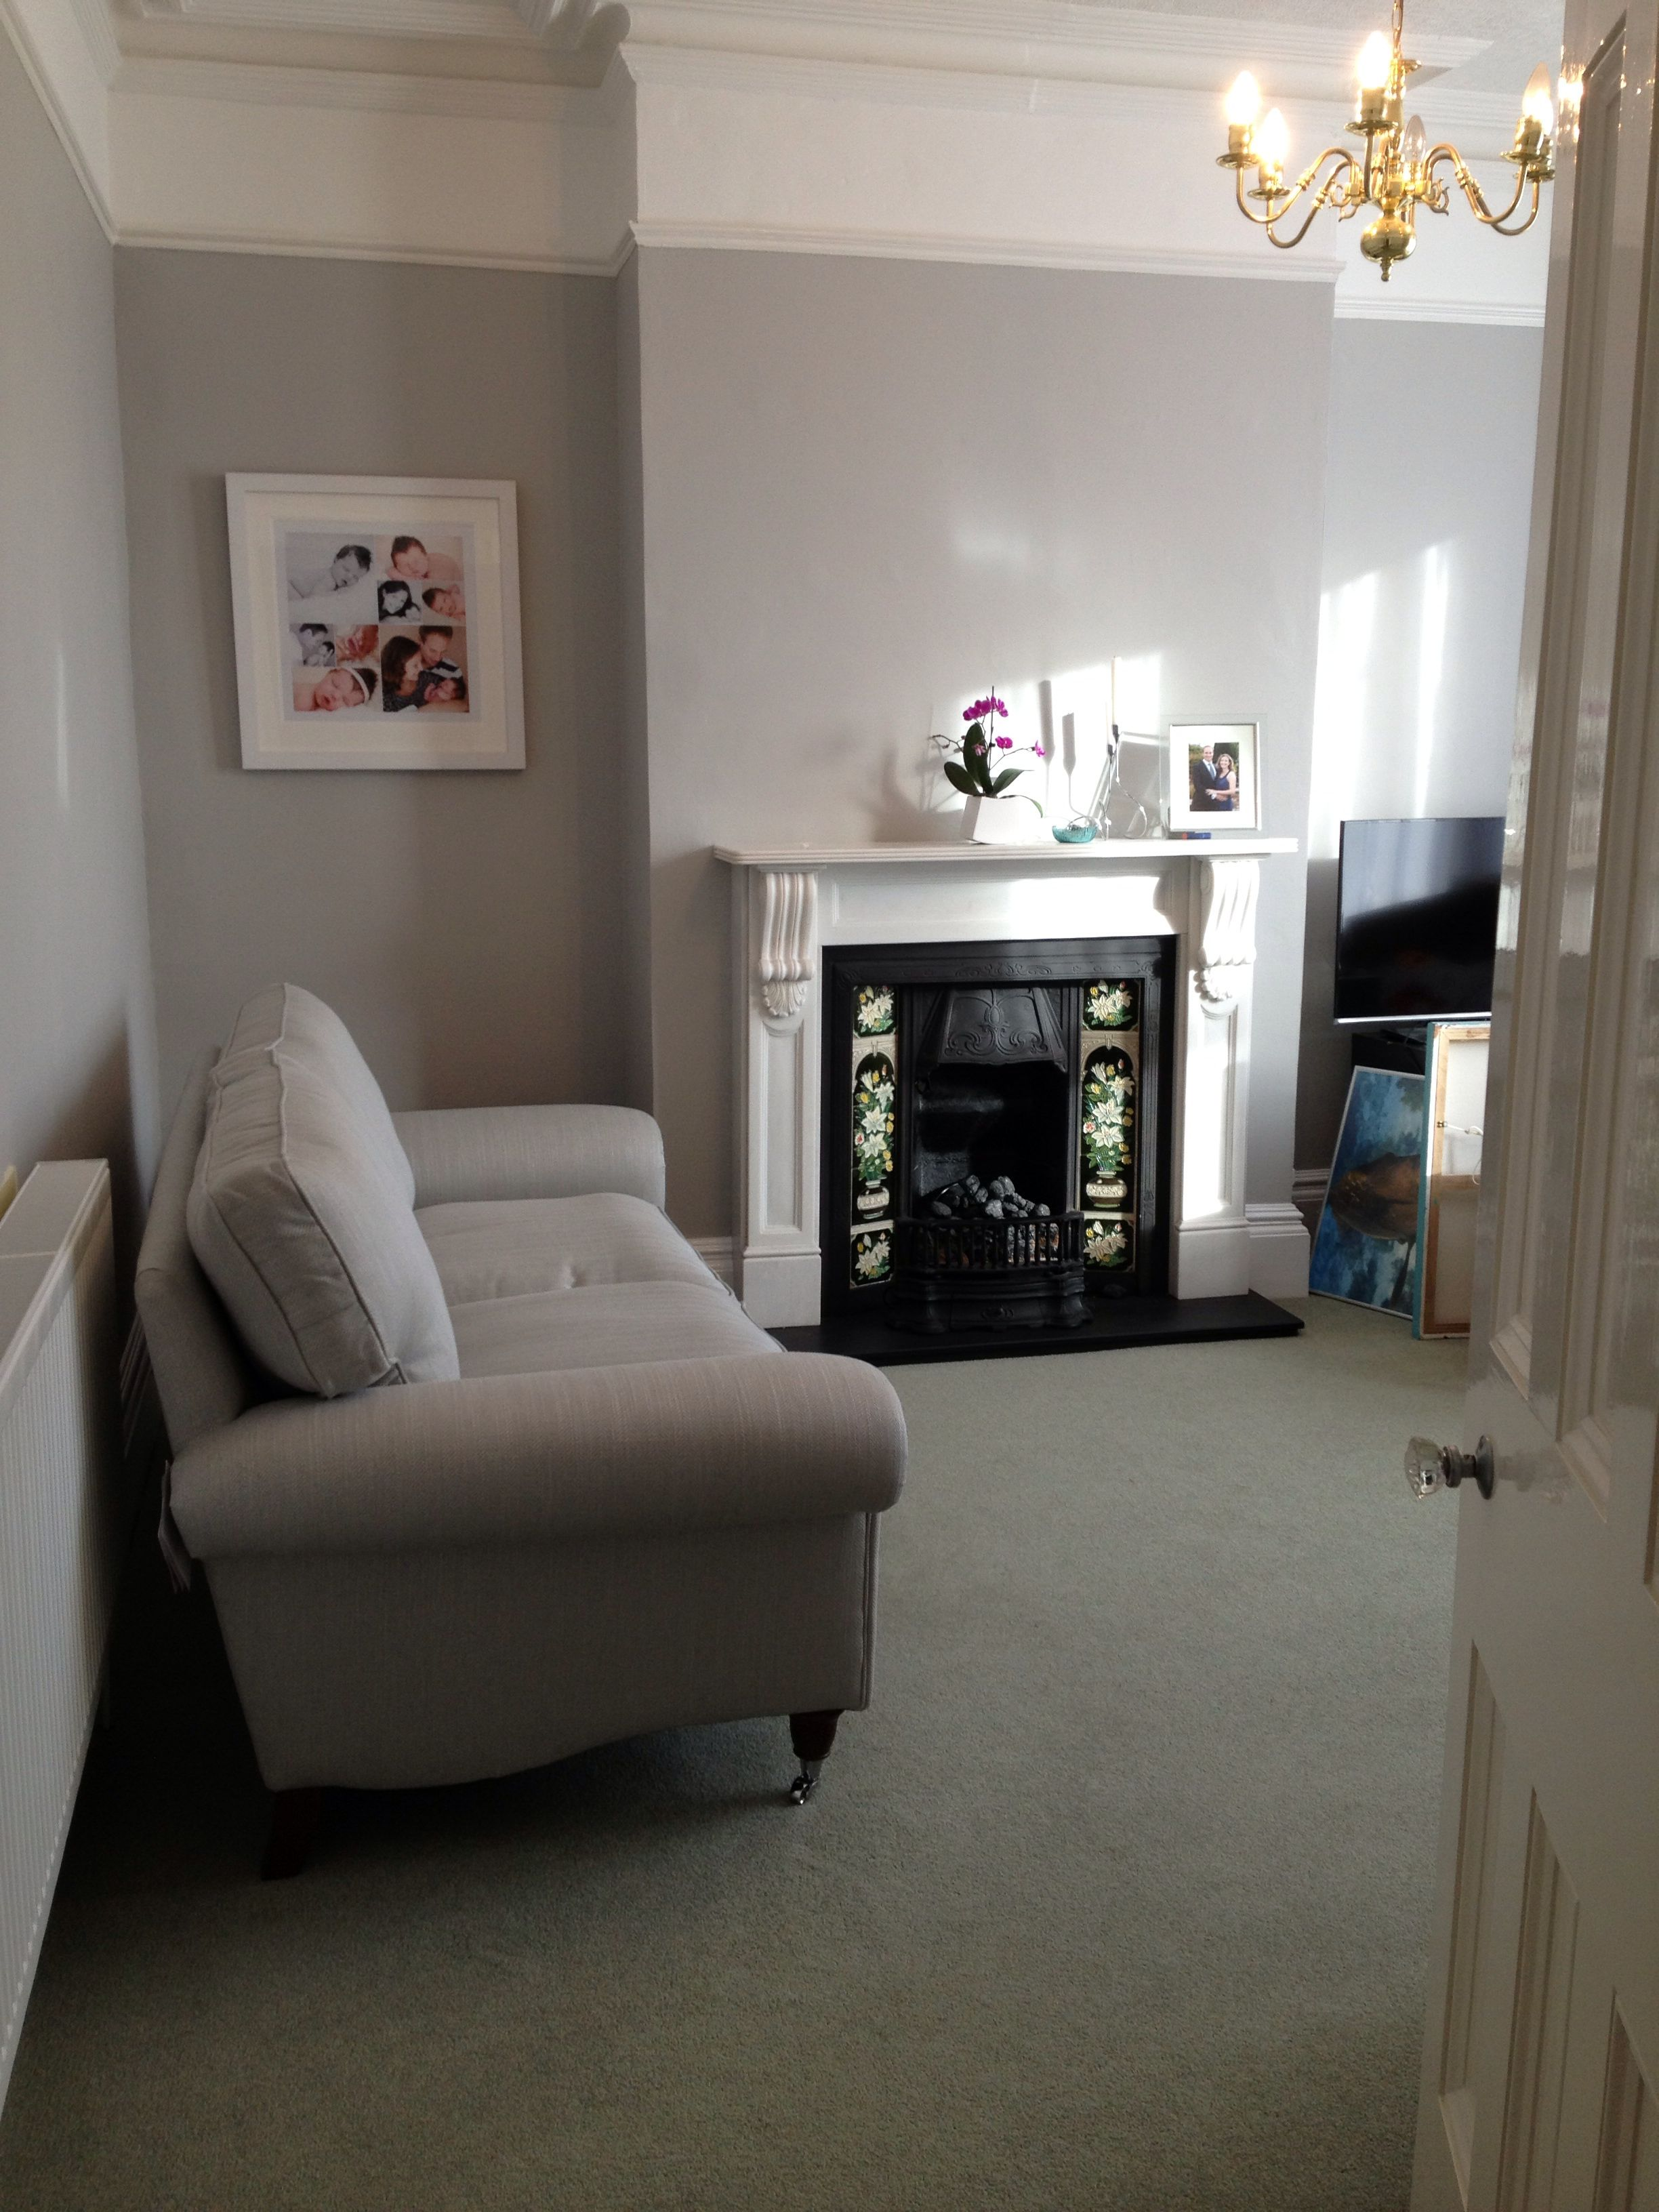 Finally My New Sitting Room Coming Together Loving My